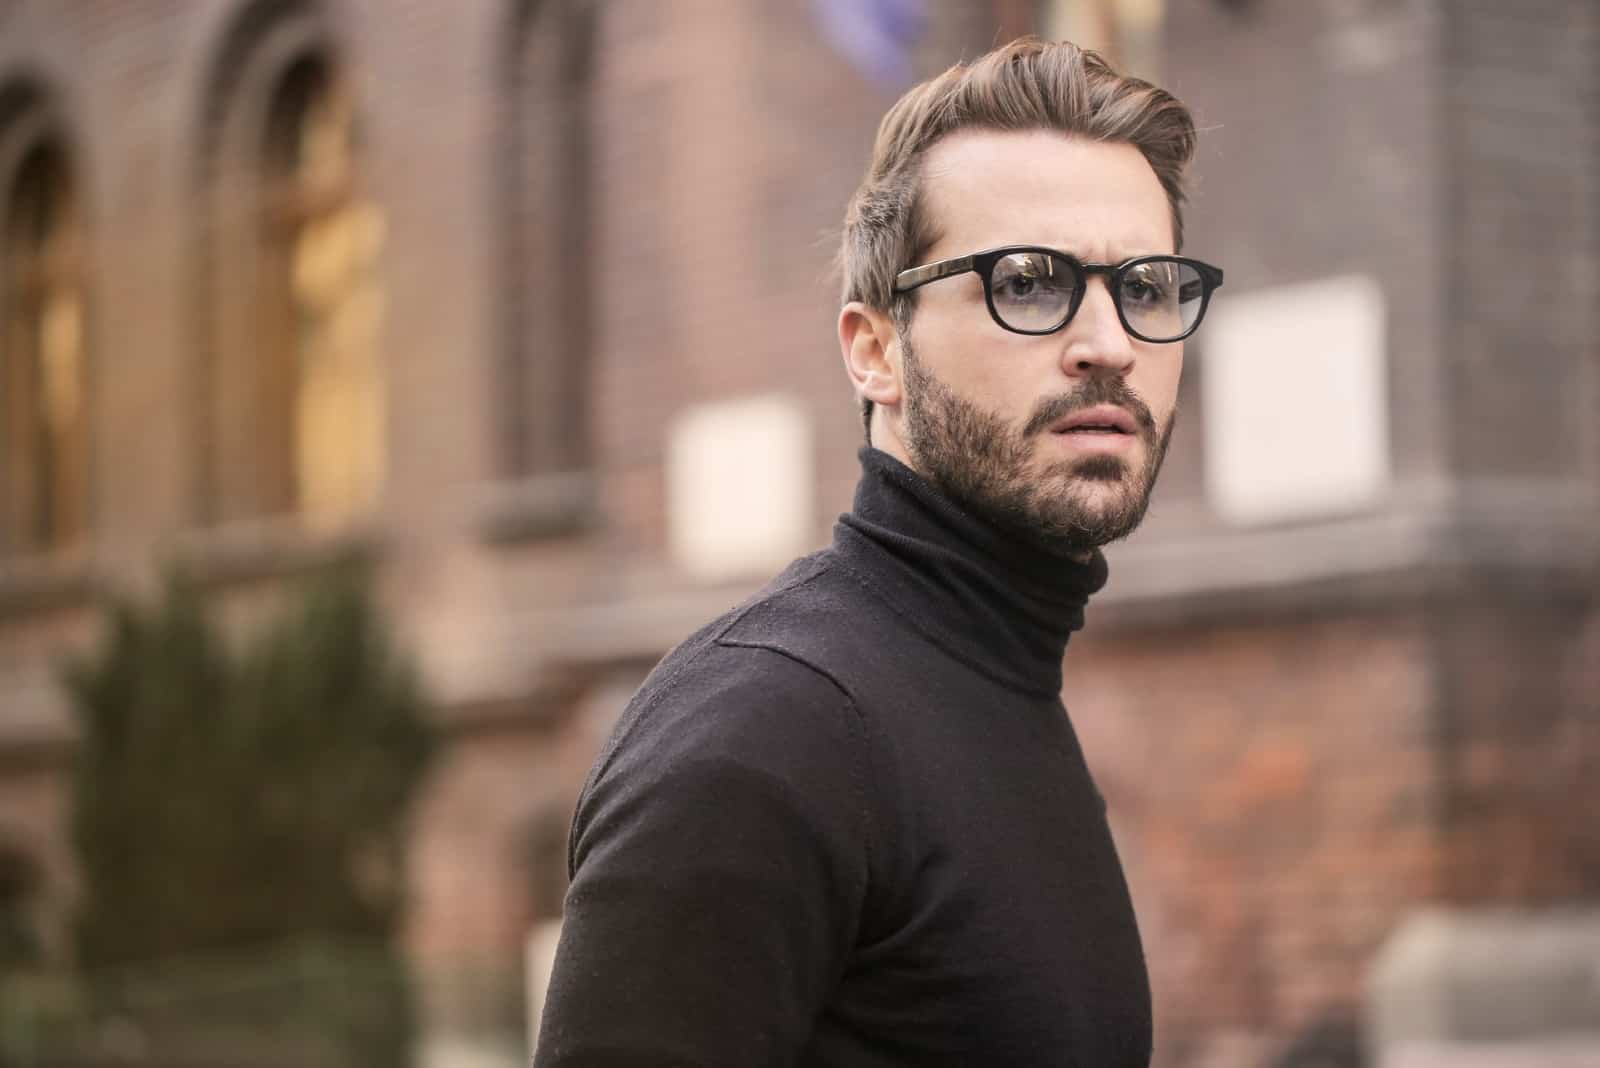 man in black roll neck sweater standing near building